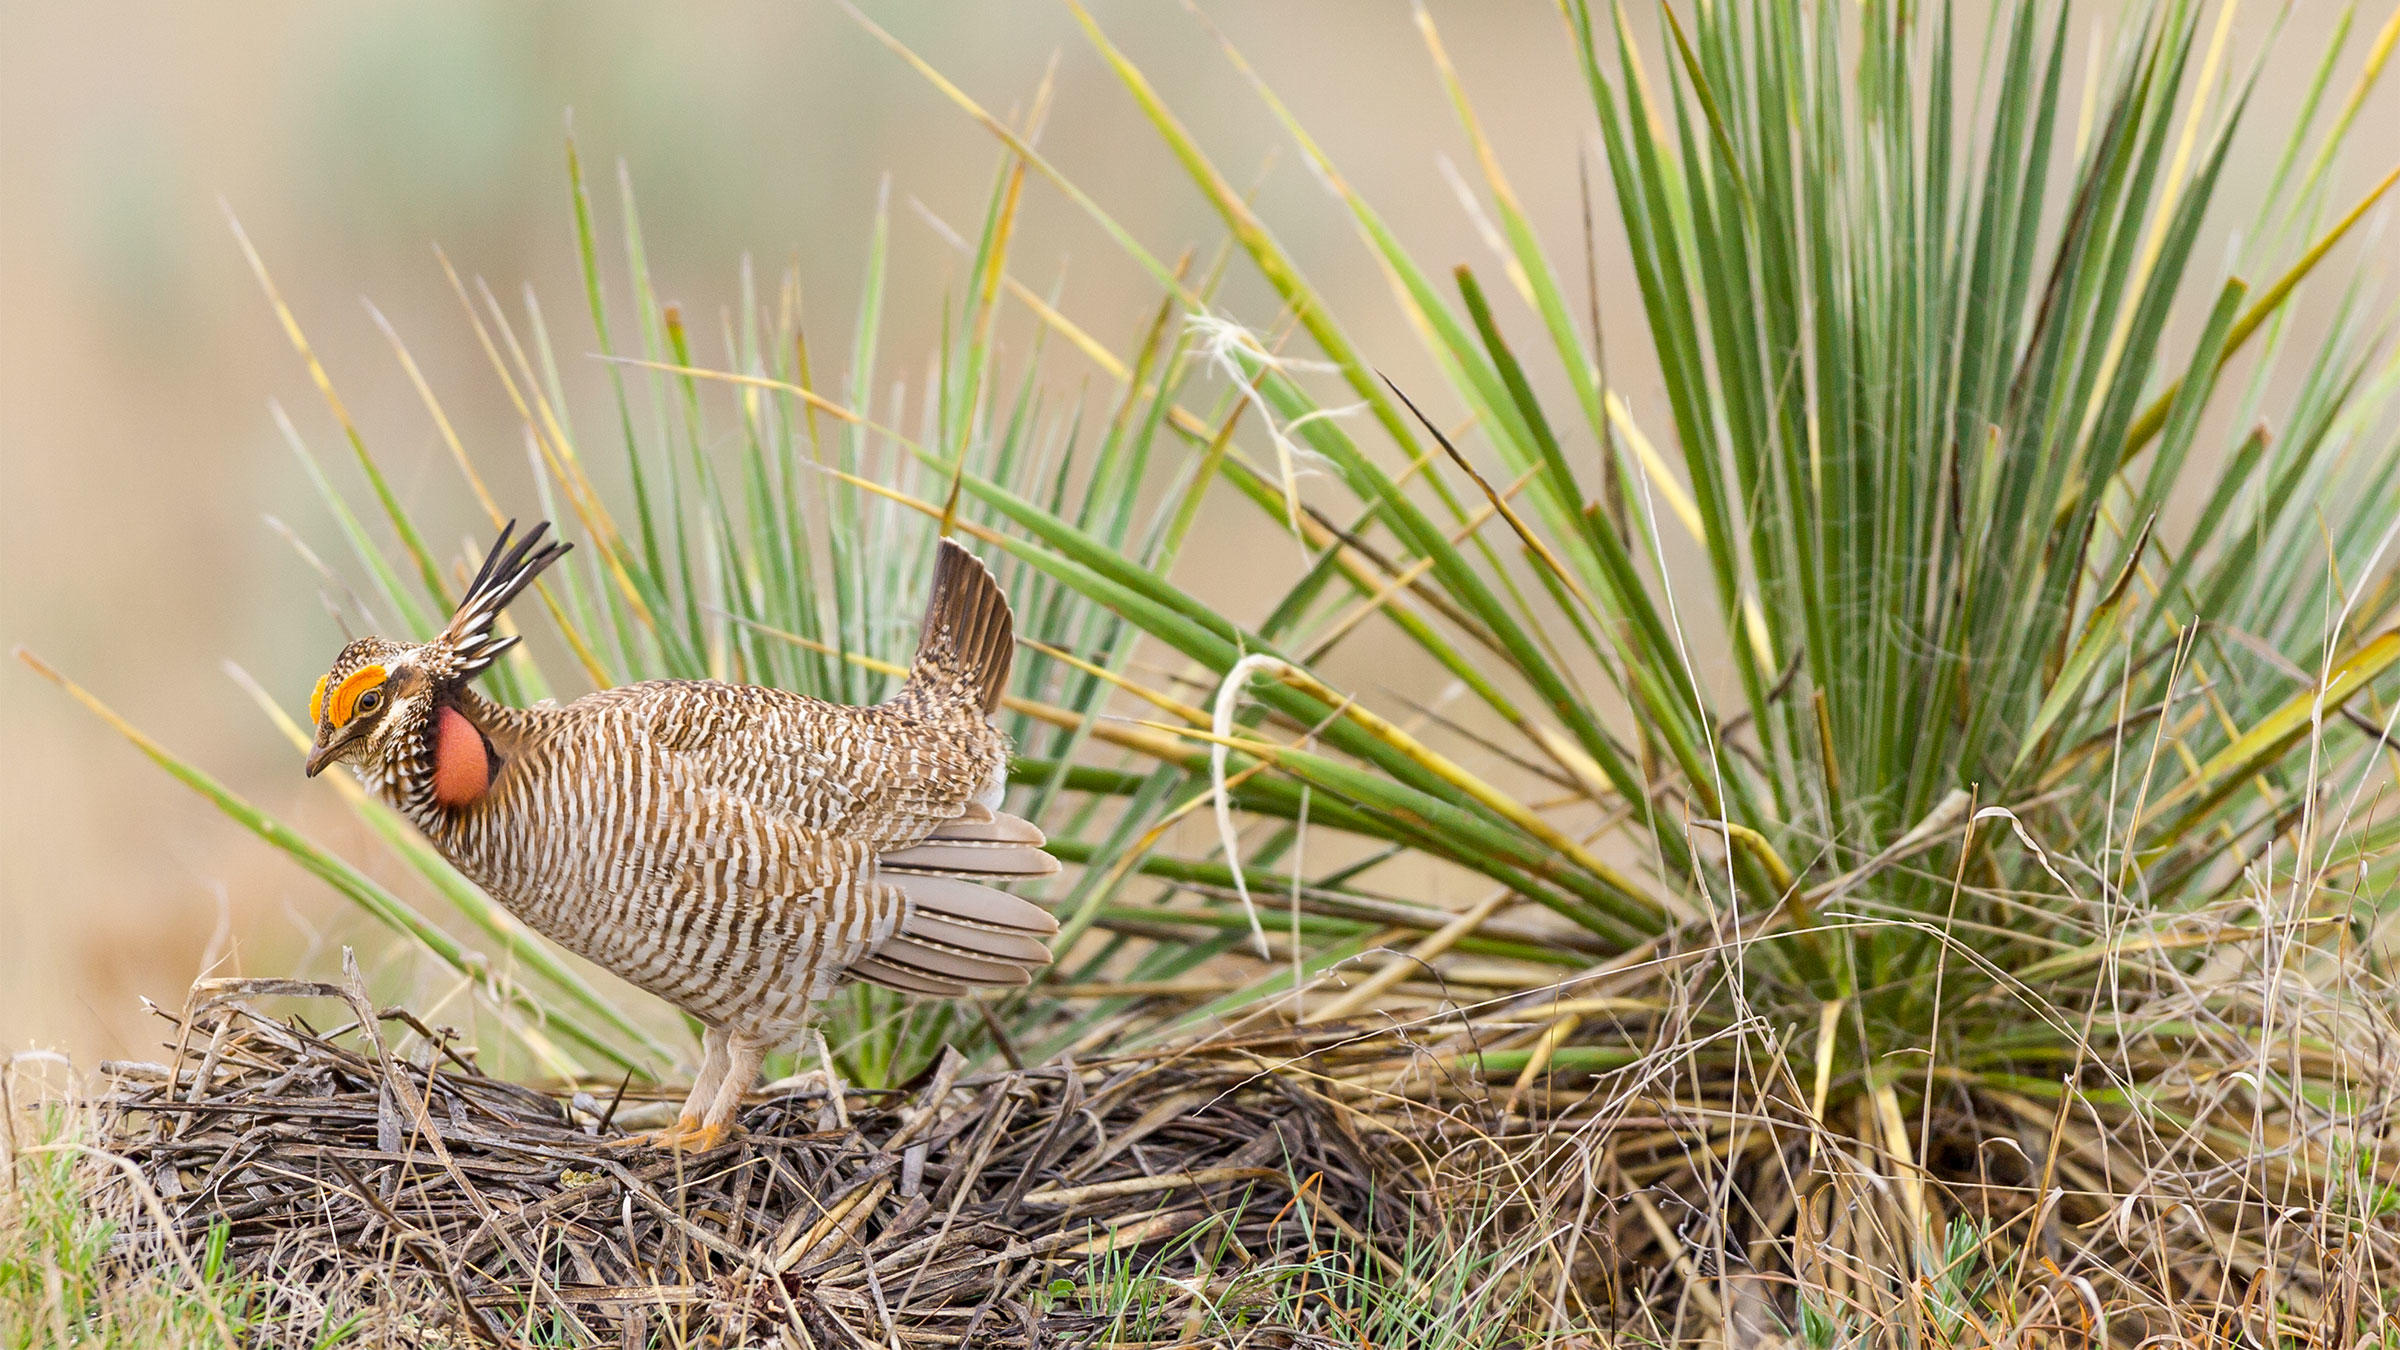 """Oil and gas motives pushed the Lesser Prairie-Chicken off the endangered species list last summer. There could be more of where that came from in upcoming months. <a href=""""www.nopnatureimages.com"""">Noppadol Paothong</a>"""